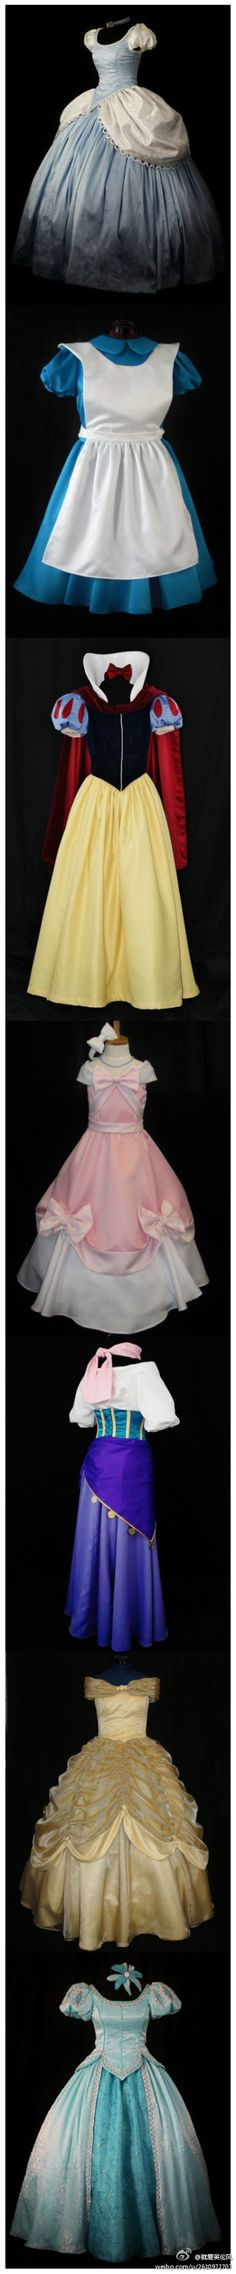 Princess dresses!